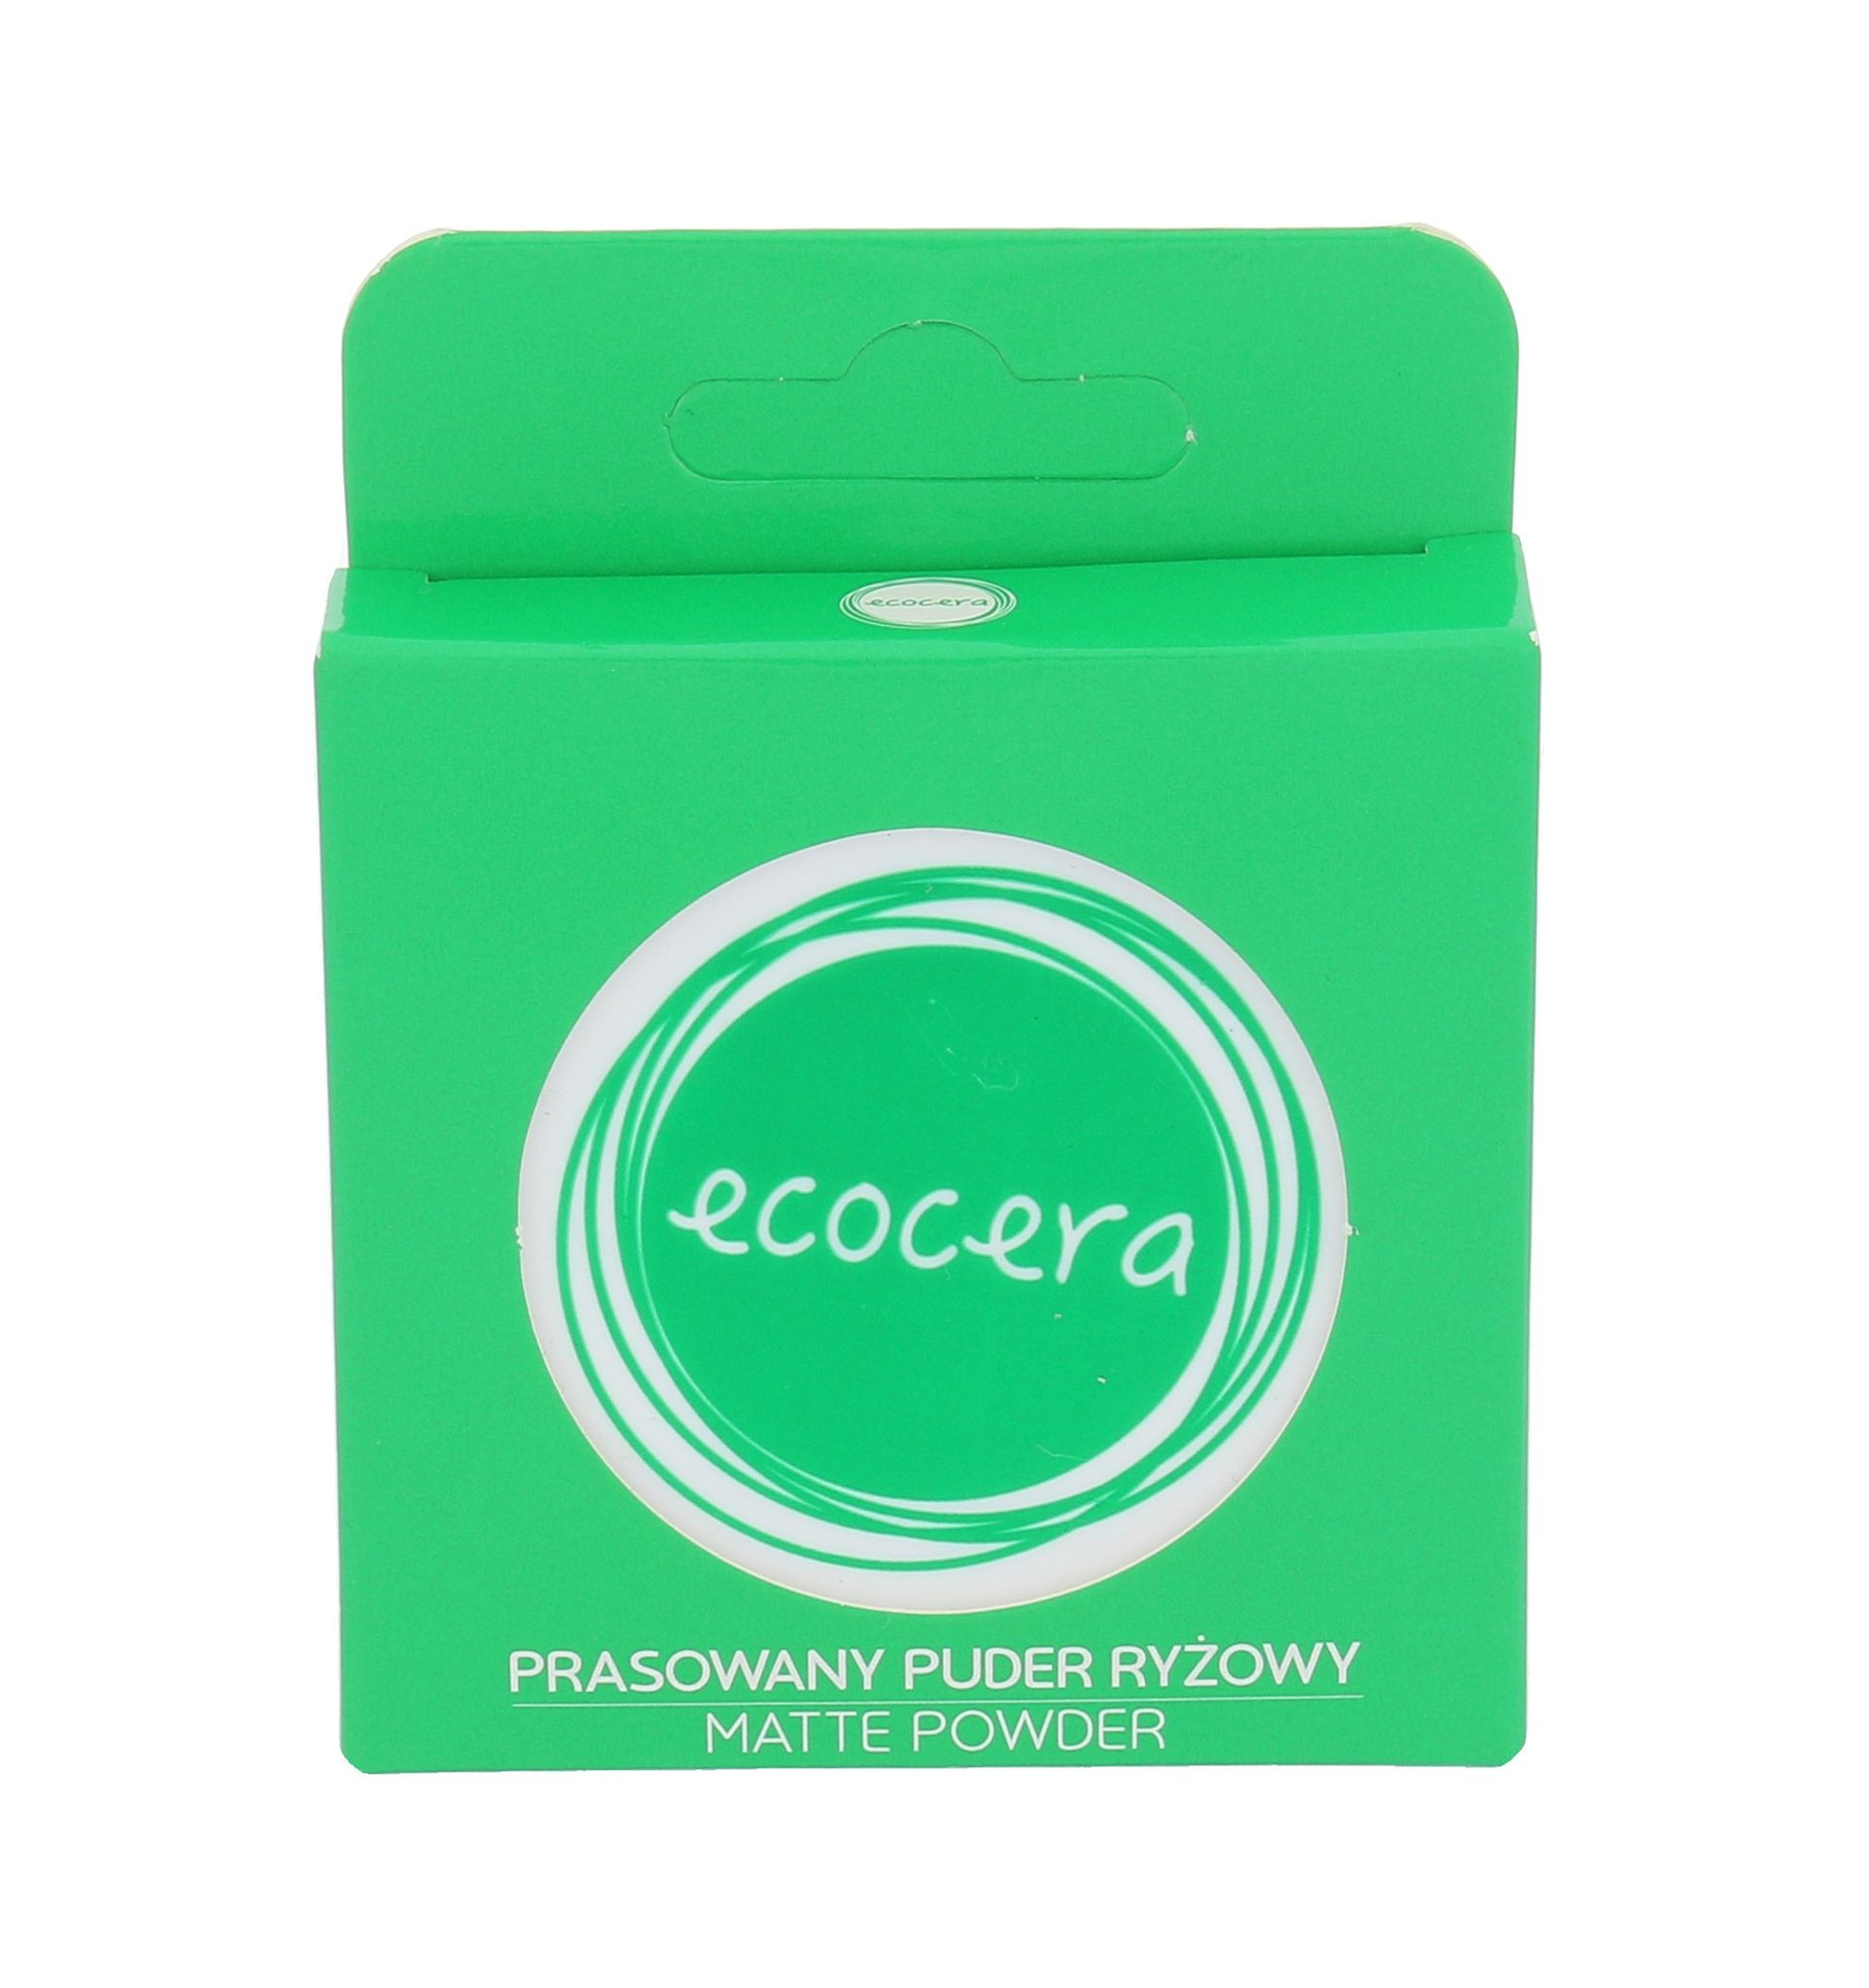 Ecocera Pressed Rice Matte Powder Cosmetic 10g